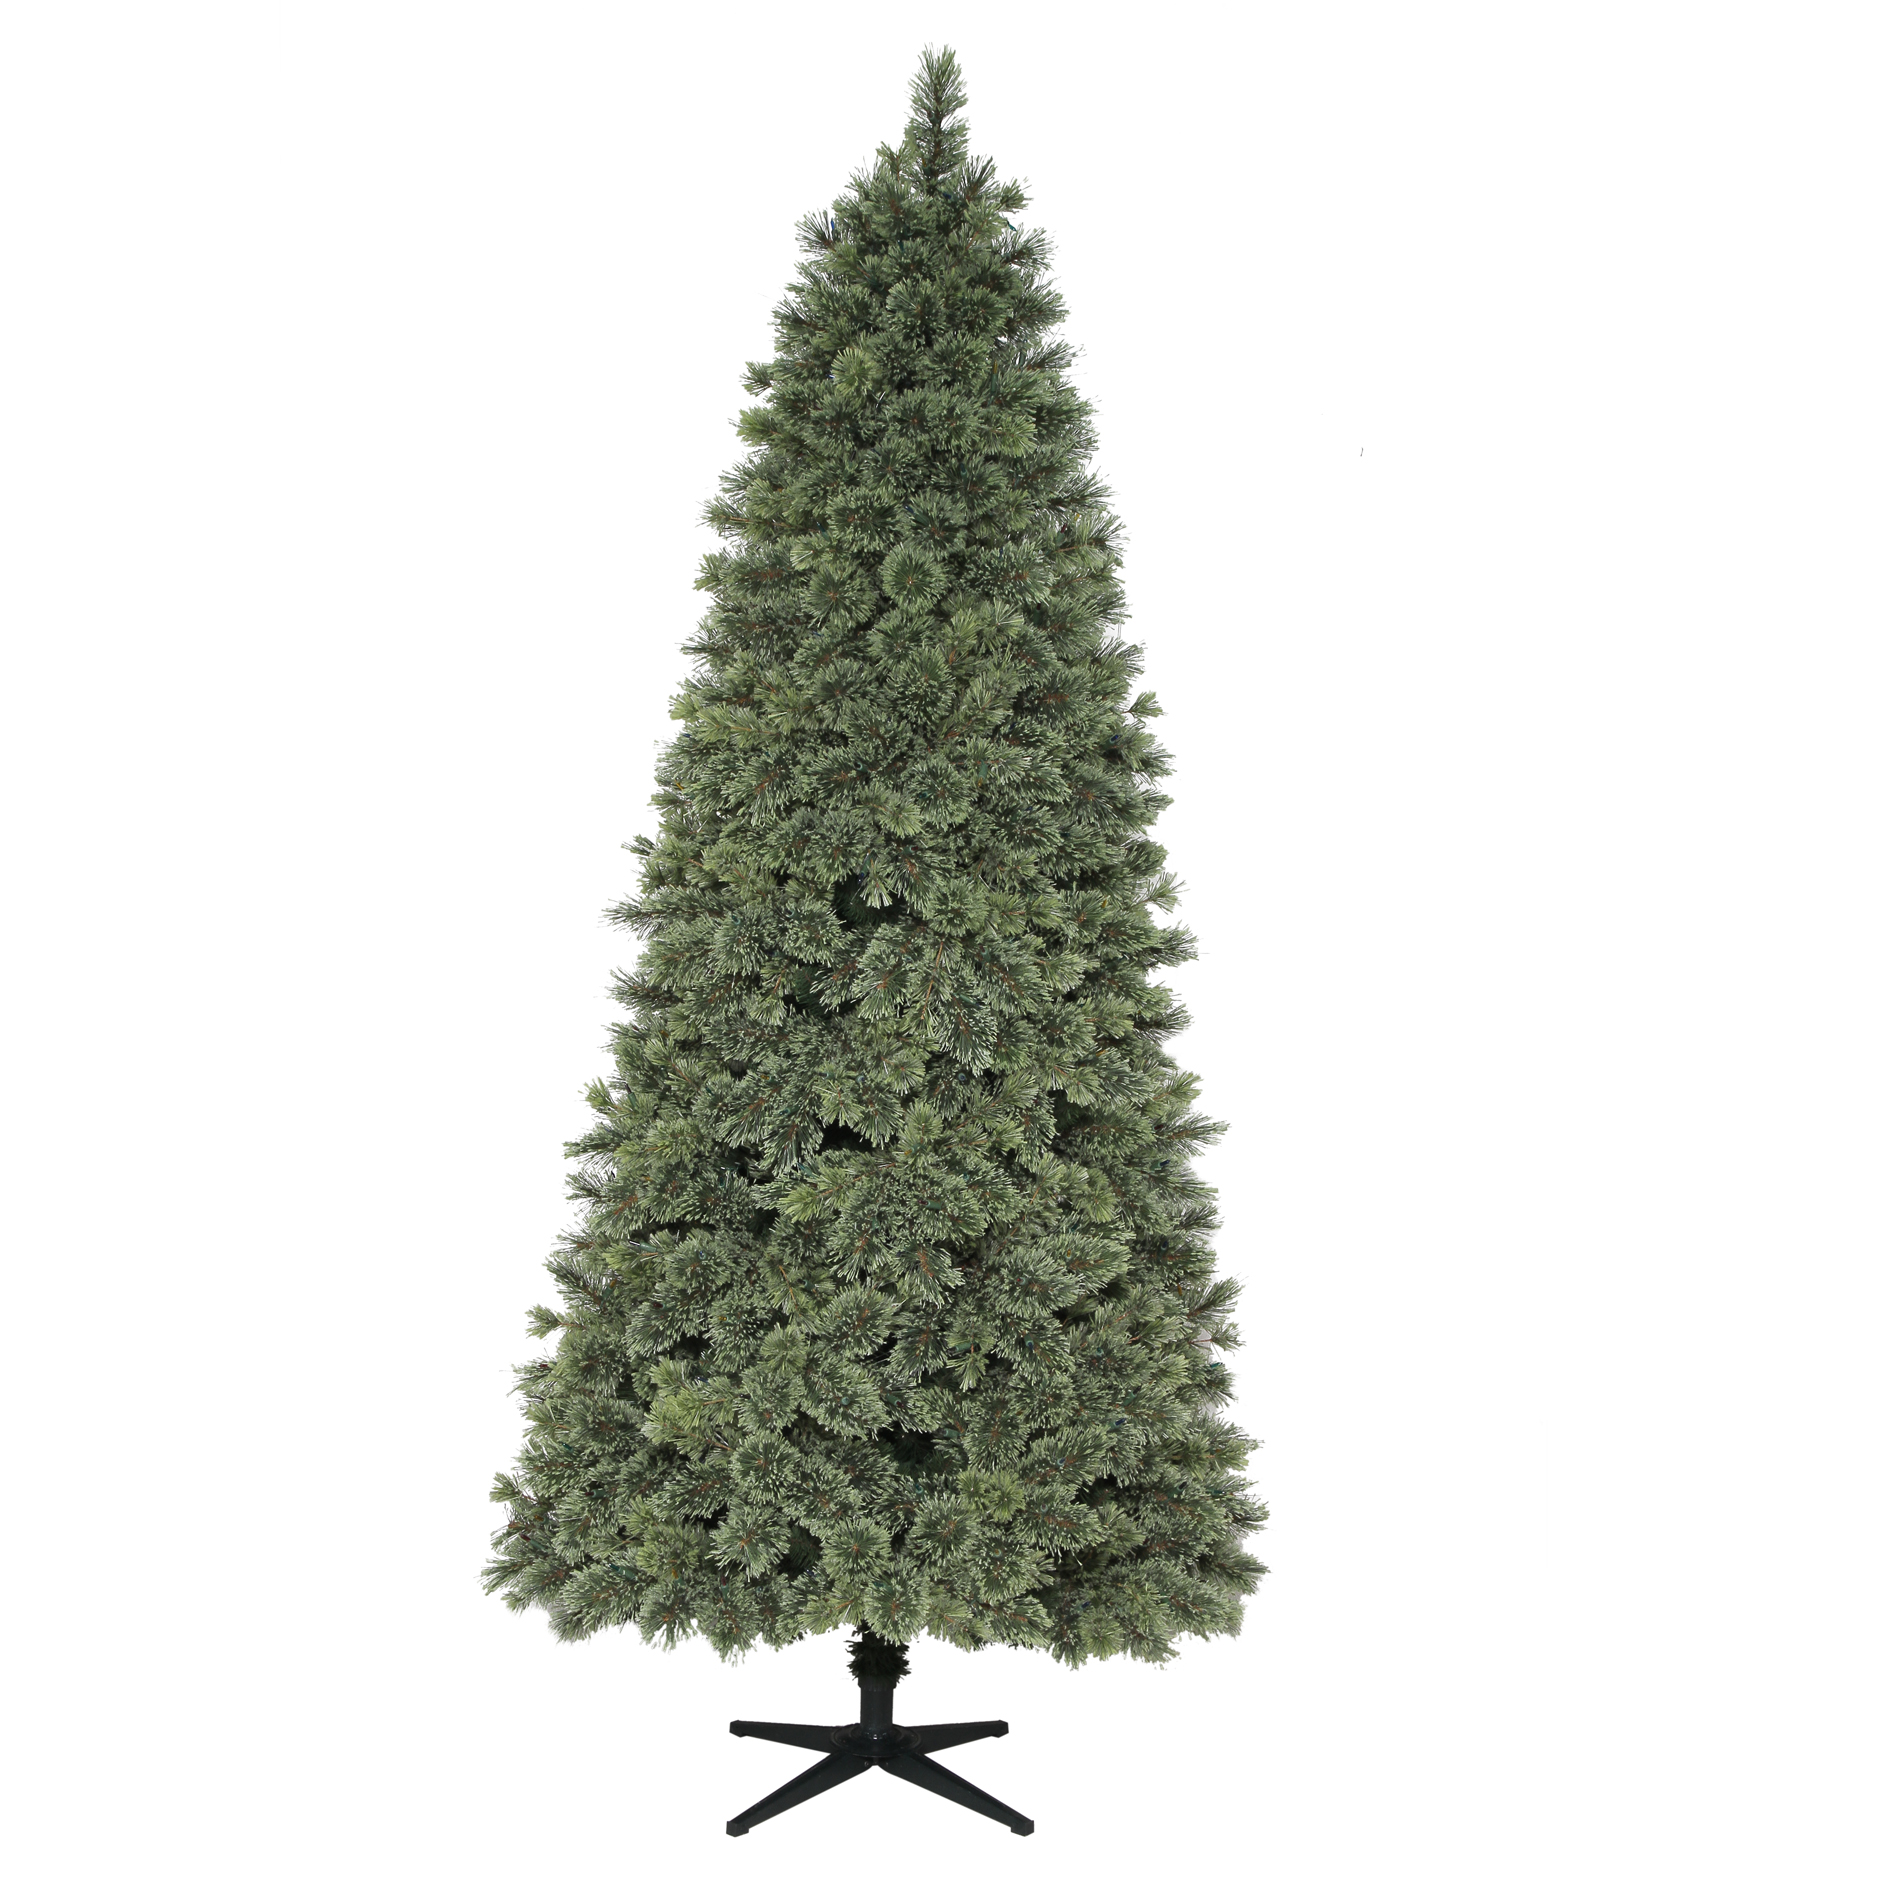 Donner and Blitzen 7.5' 600 Clear Light Pre-lit Harrison Cashmere Slim Mixed Pine Christmas Tree